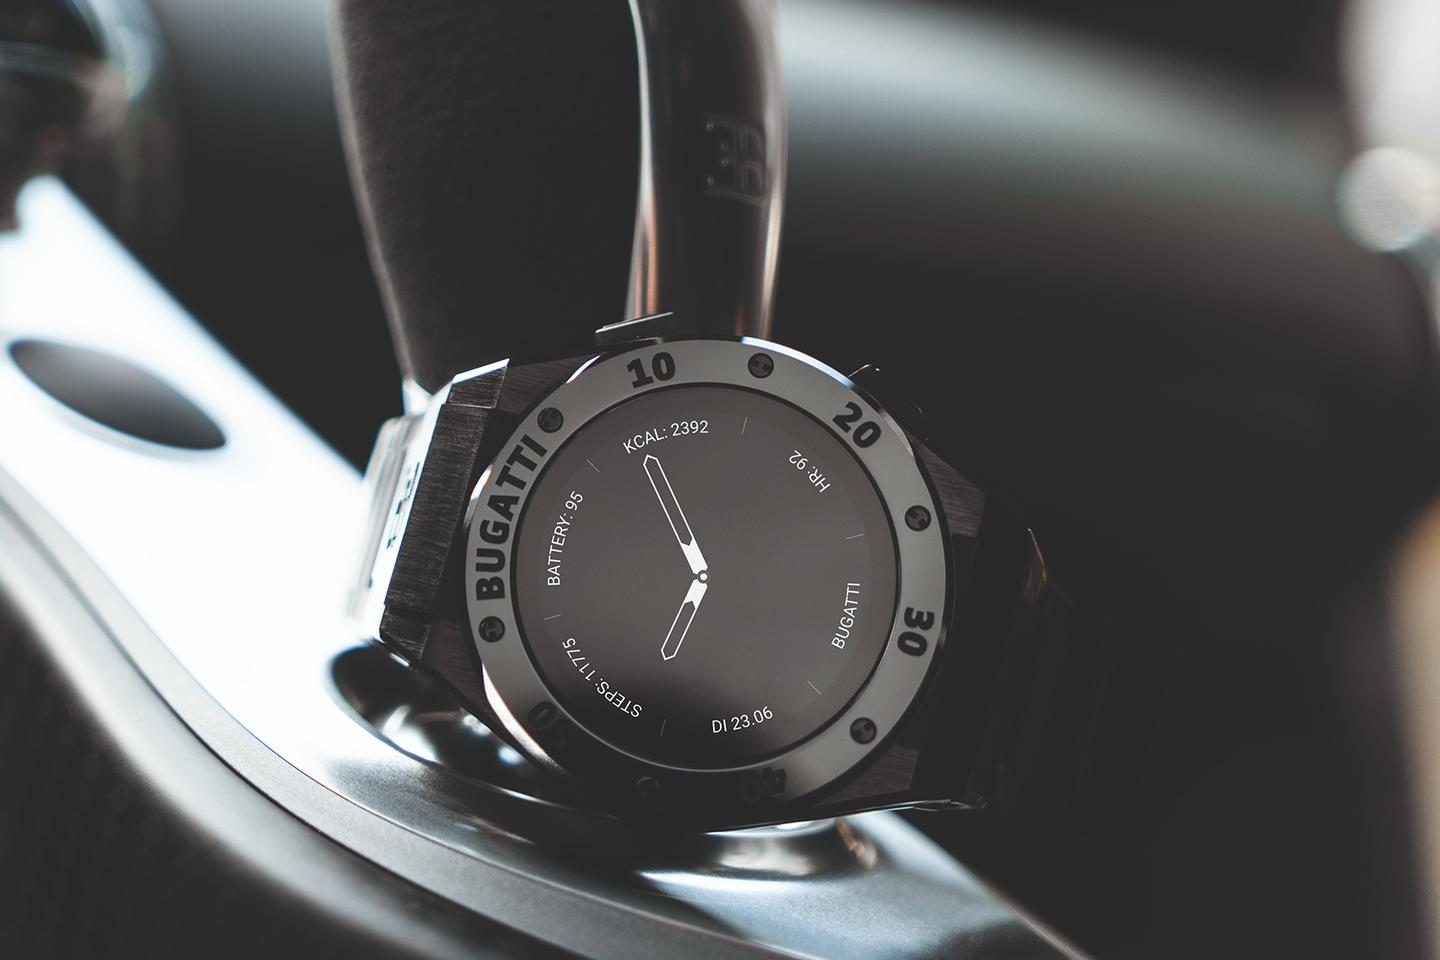 Bugatti has lent its name to three new smartwatch models